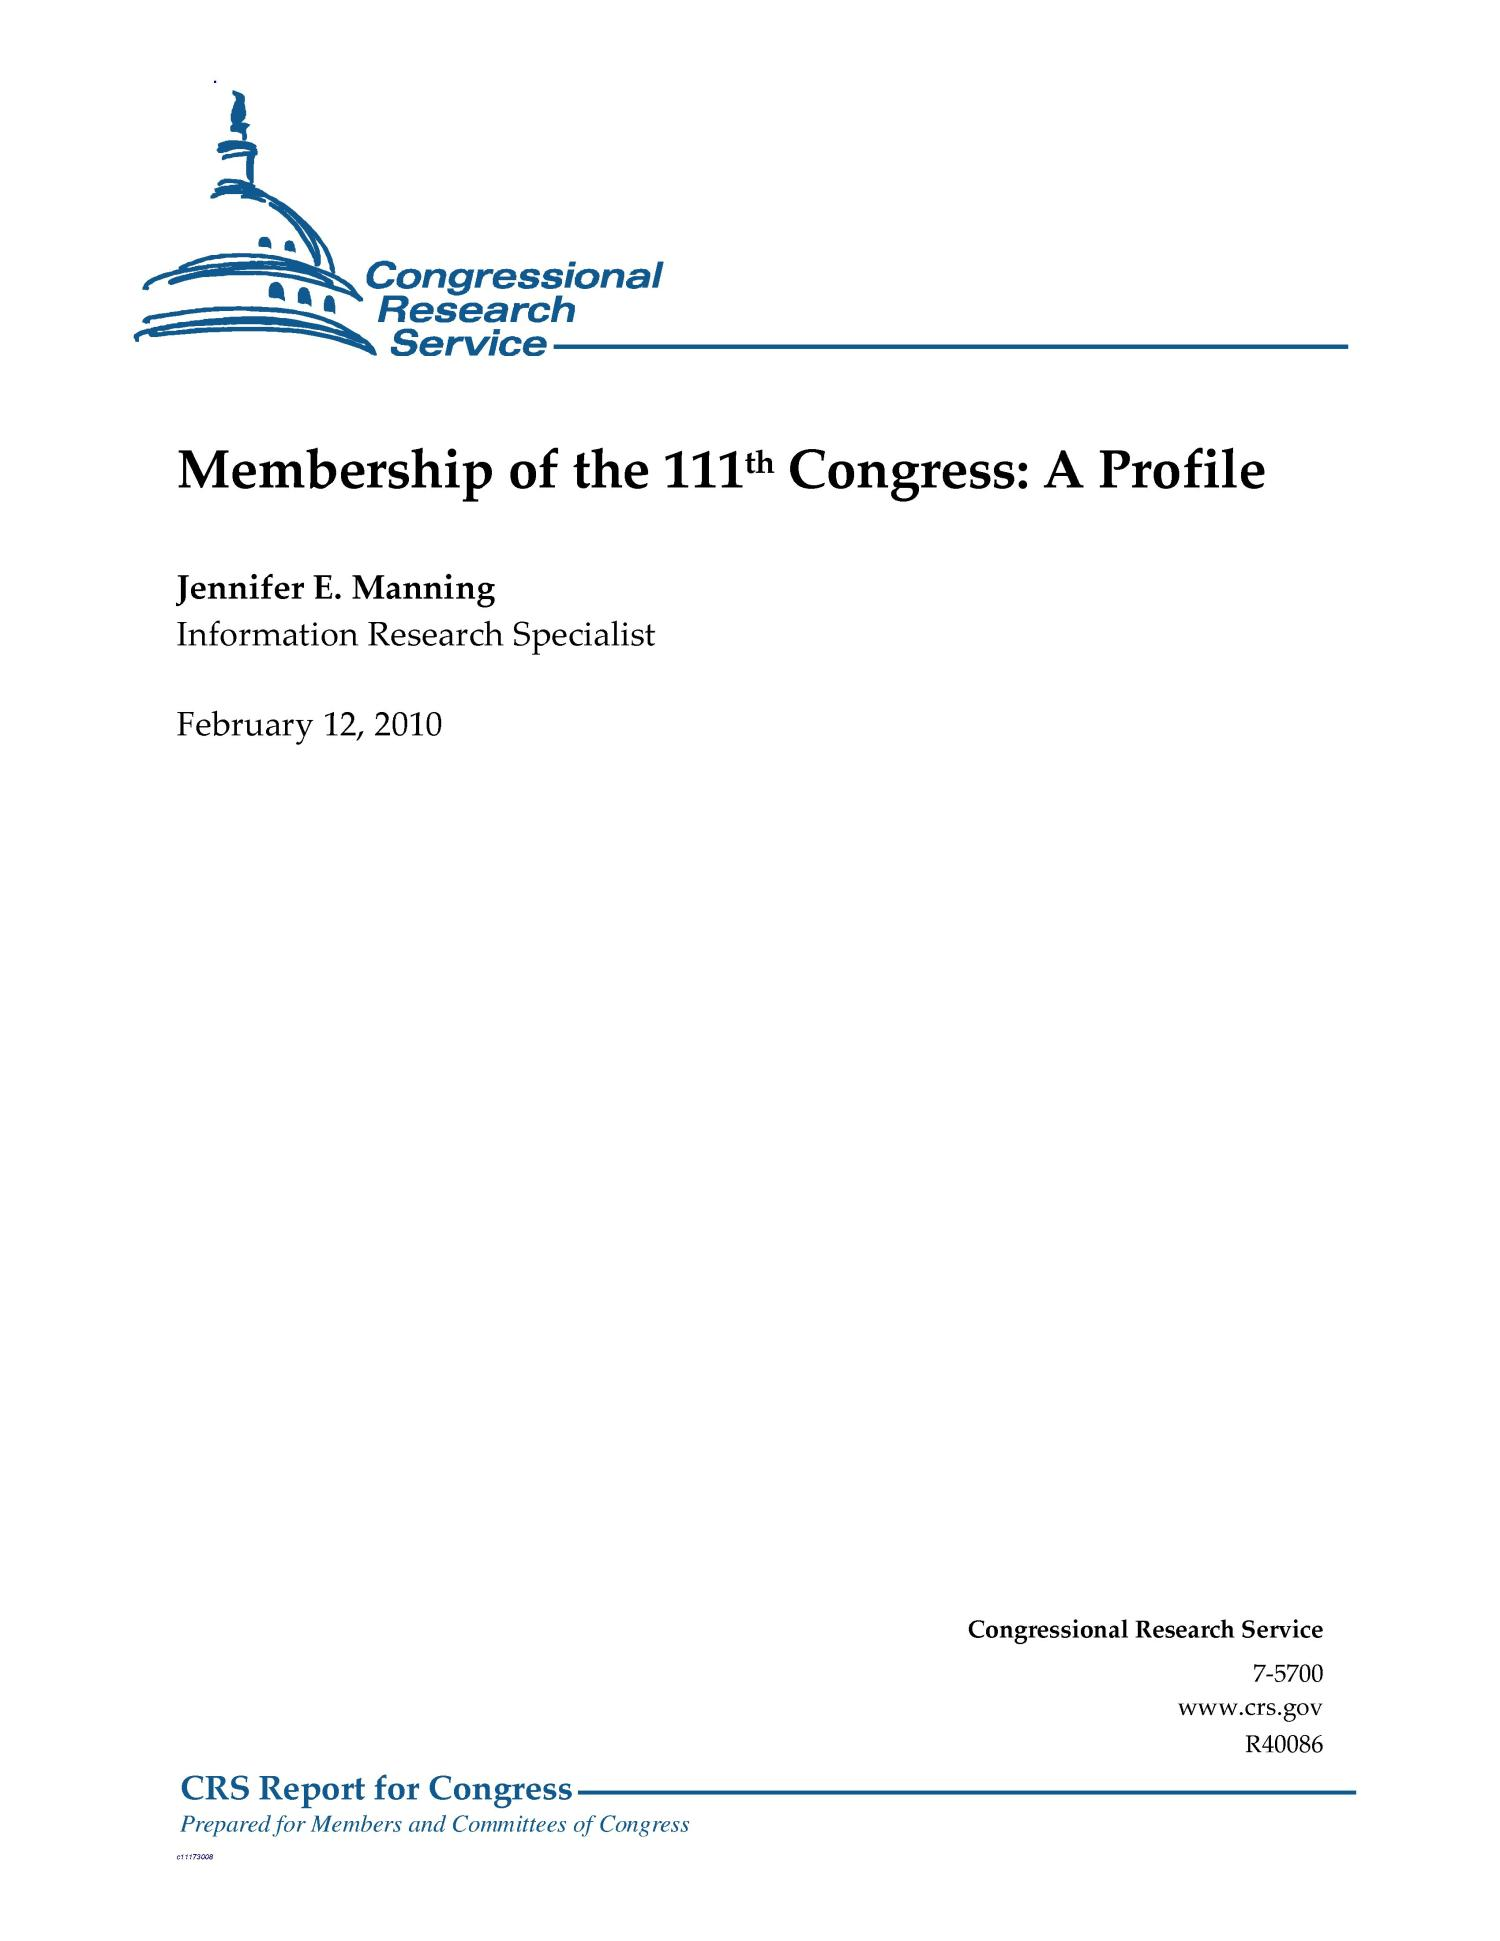 Membership of the 111th Congress: A Profile                                                                                                      [Sequence #]: 1 of 10